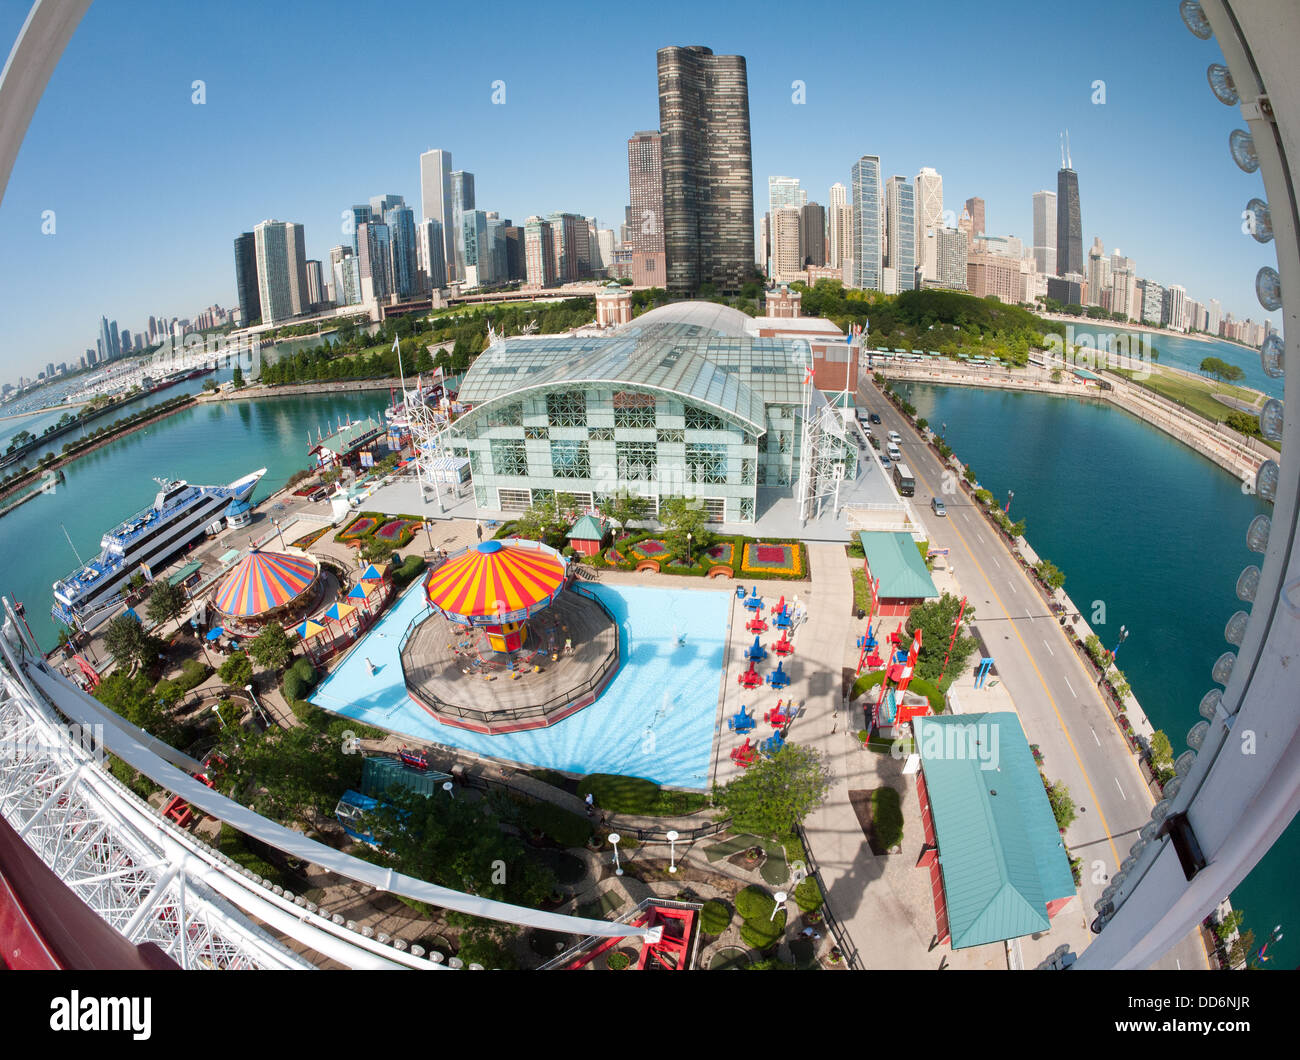 A stunning, spectacular, fisheye view of the Chicago skyline in the morning from the Navy Pier Ferris wheel. Stock Photo